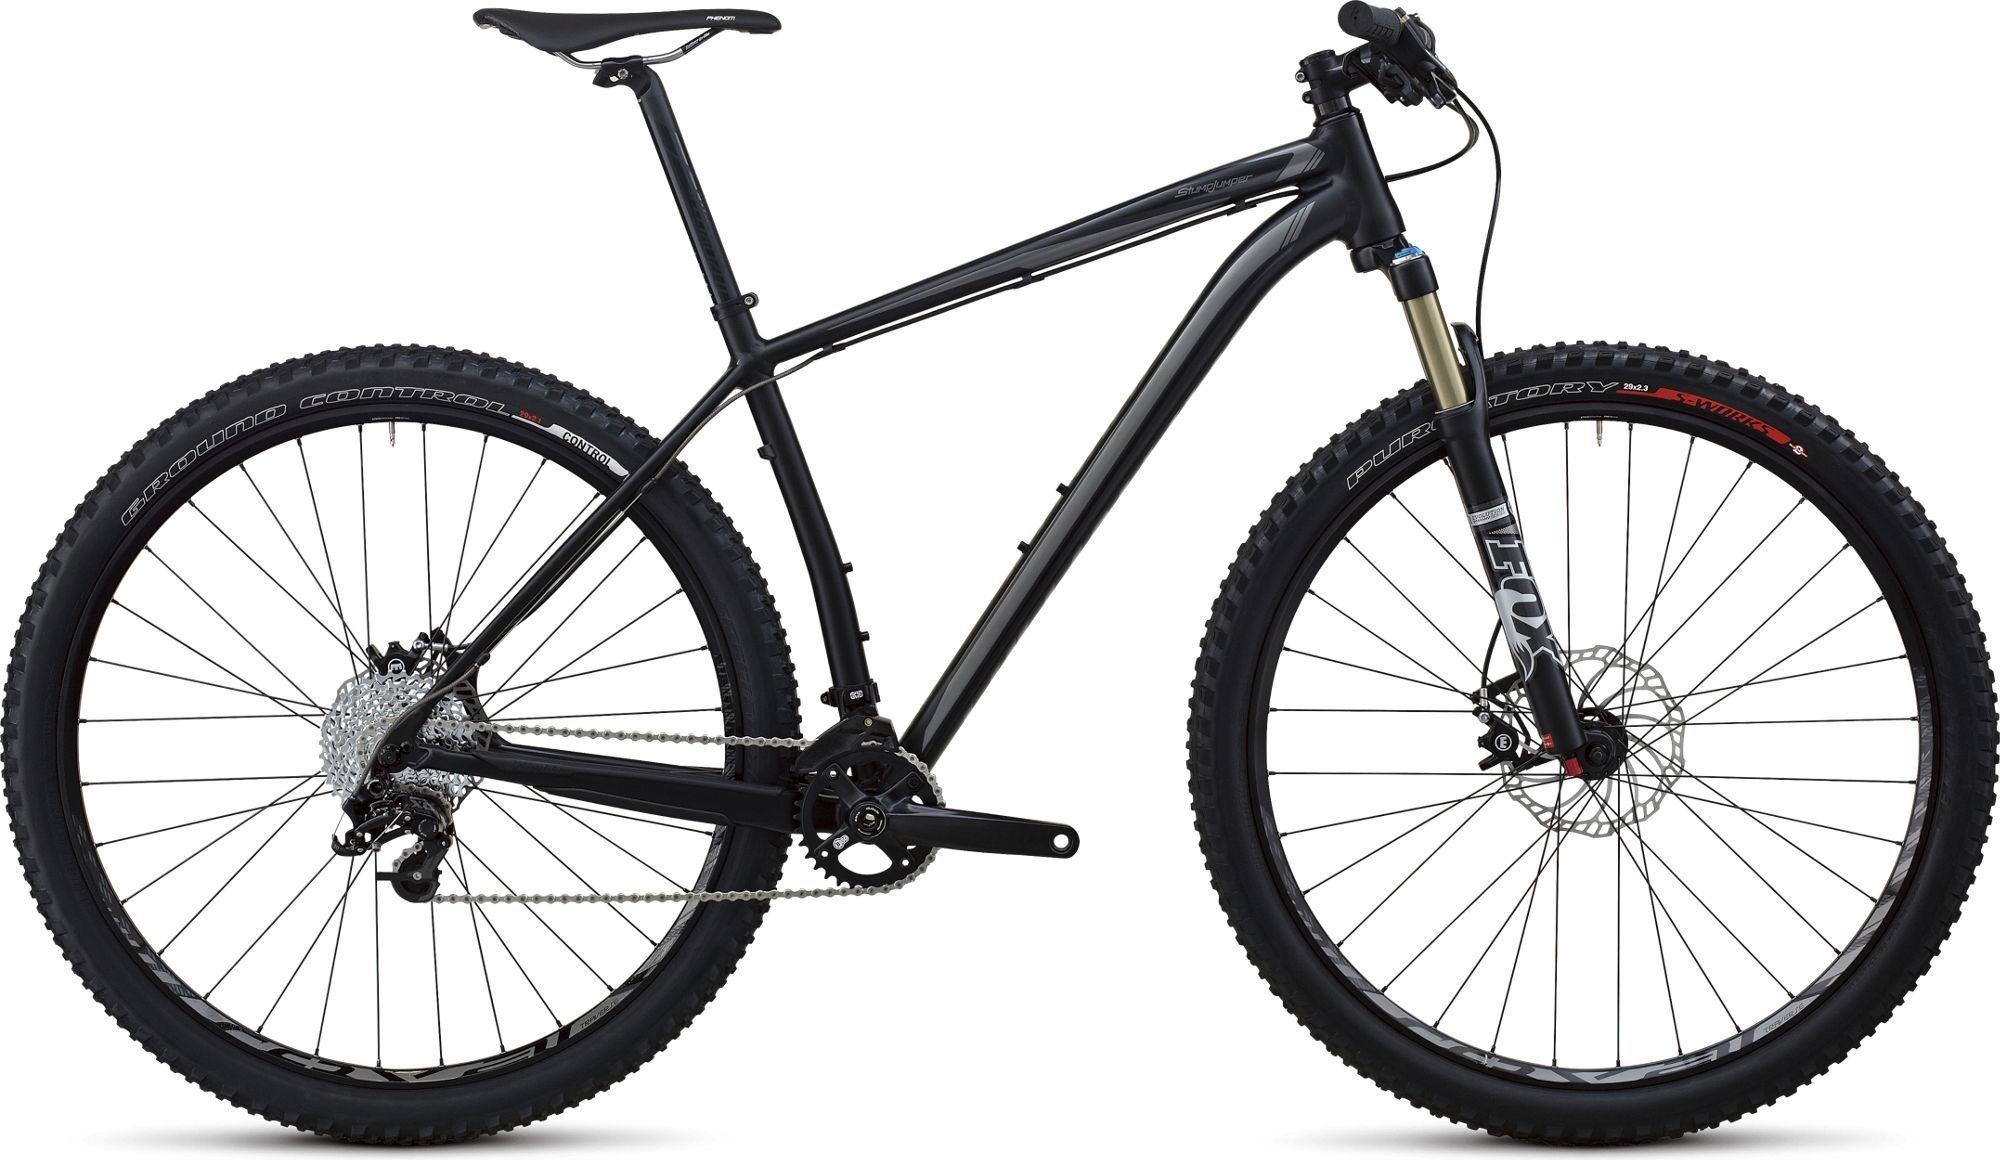 2013 specialized stumpjumper stumpjumper evo mountain. Black Bedroom Furniture Sets. Home Design Ideas